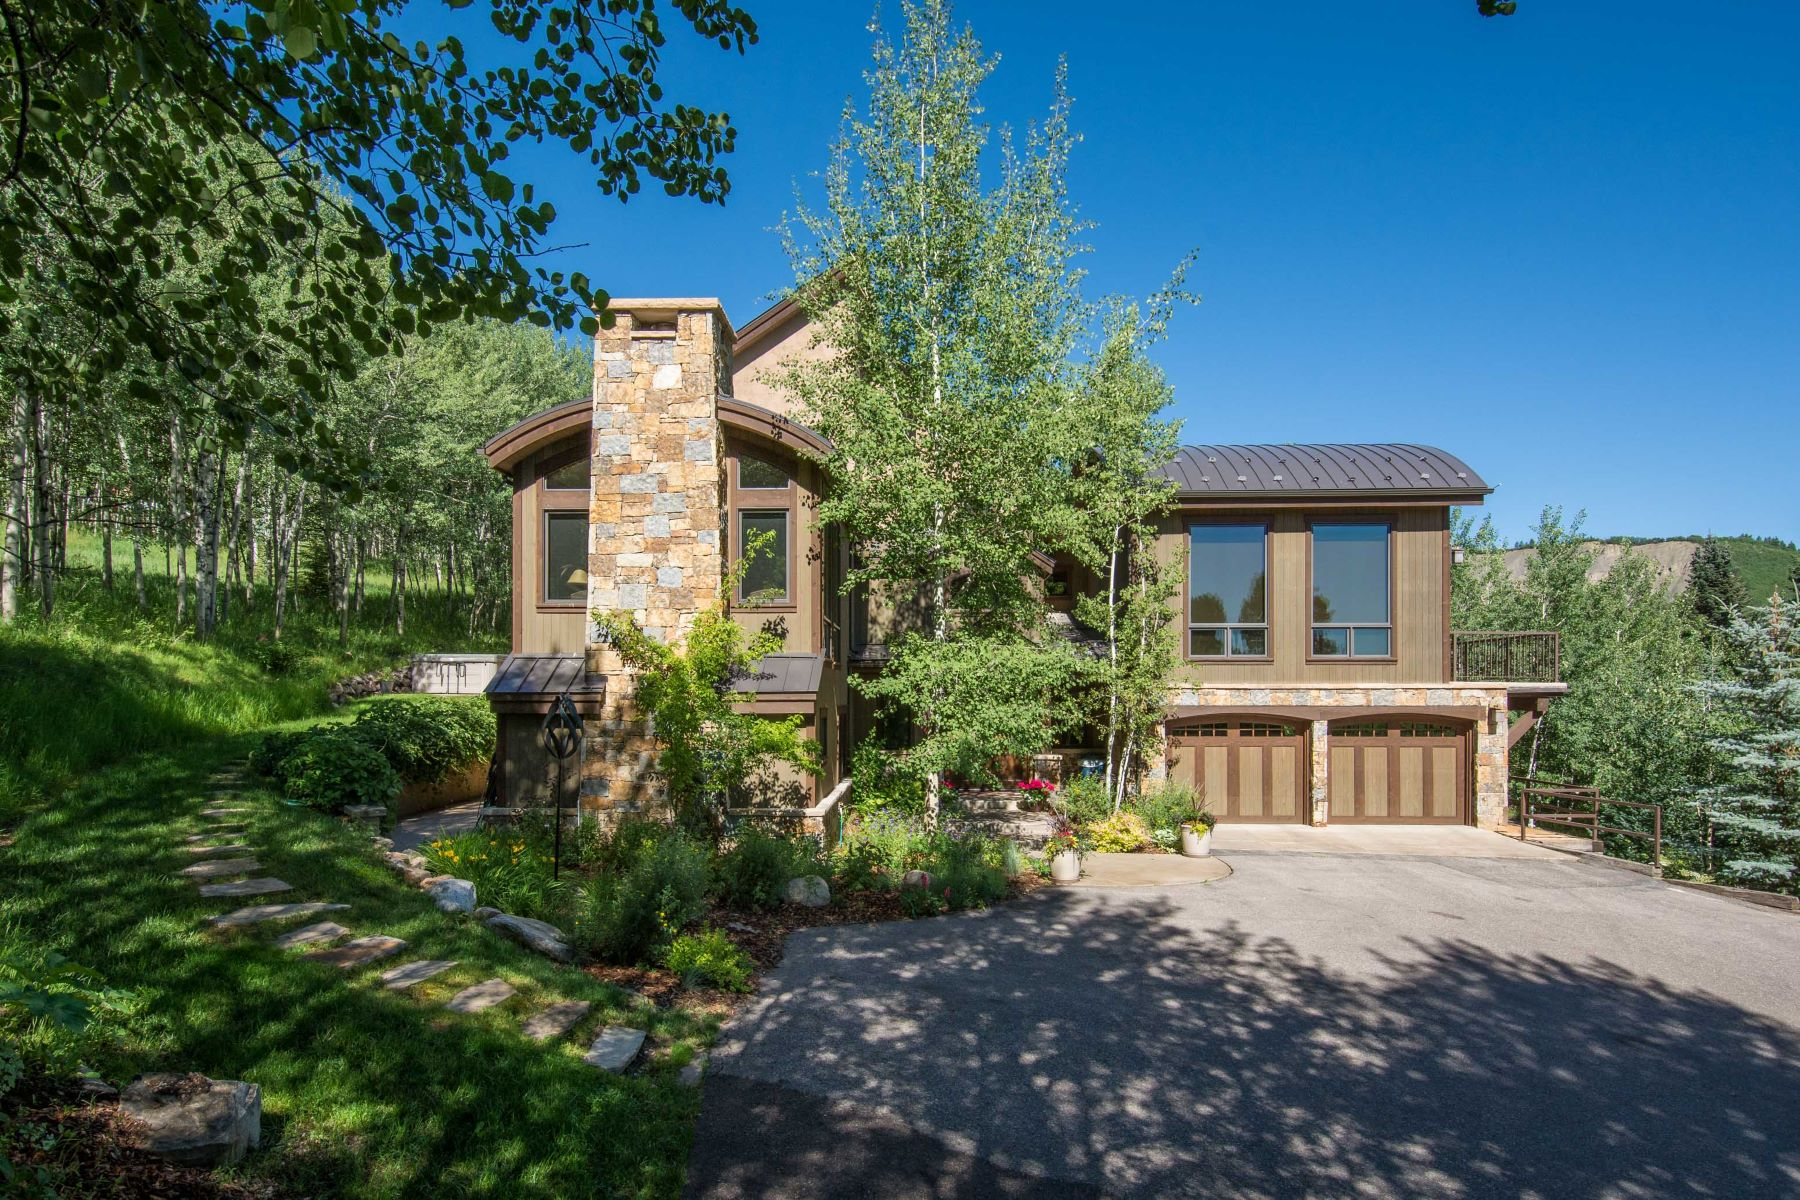 Single Family Home for Sale at One-Of-A-Kind Ski Home 435 Faraway, Snowmass Village, Colorado, 81615 United States